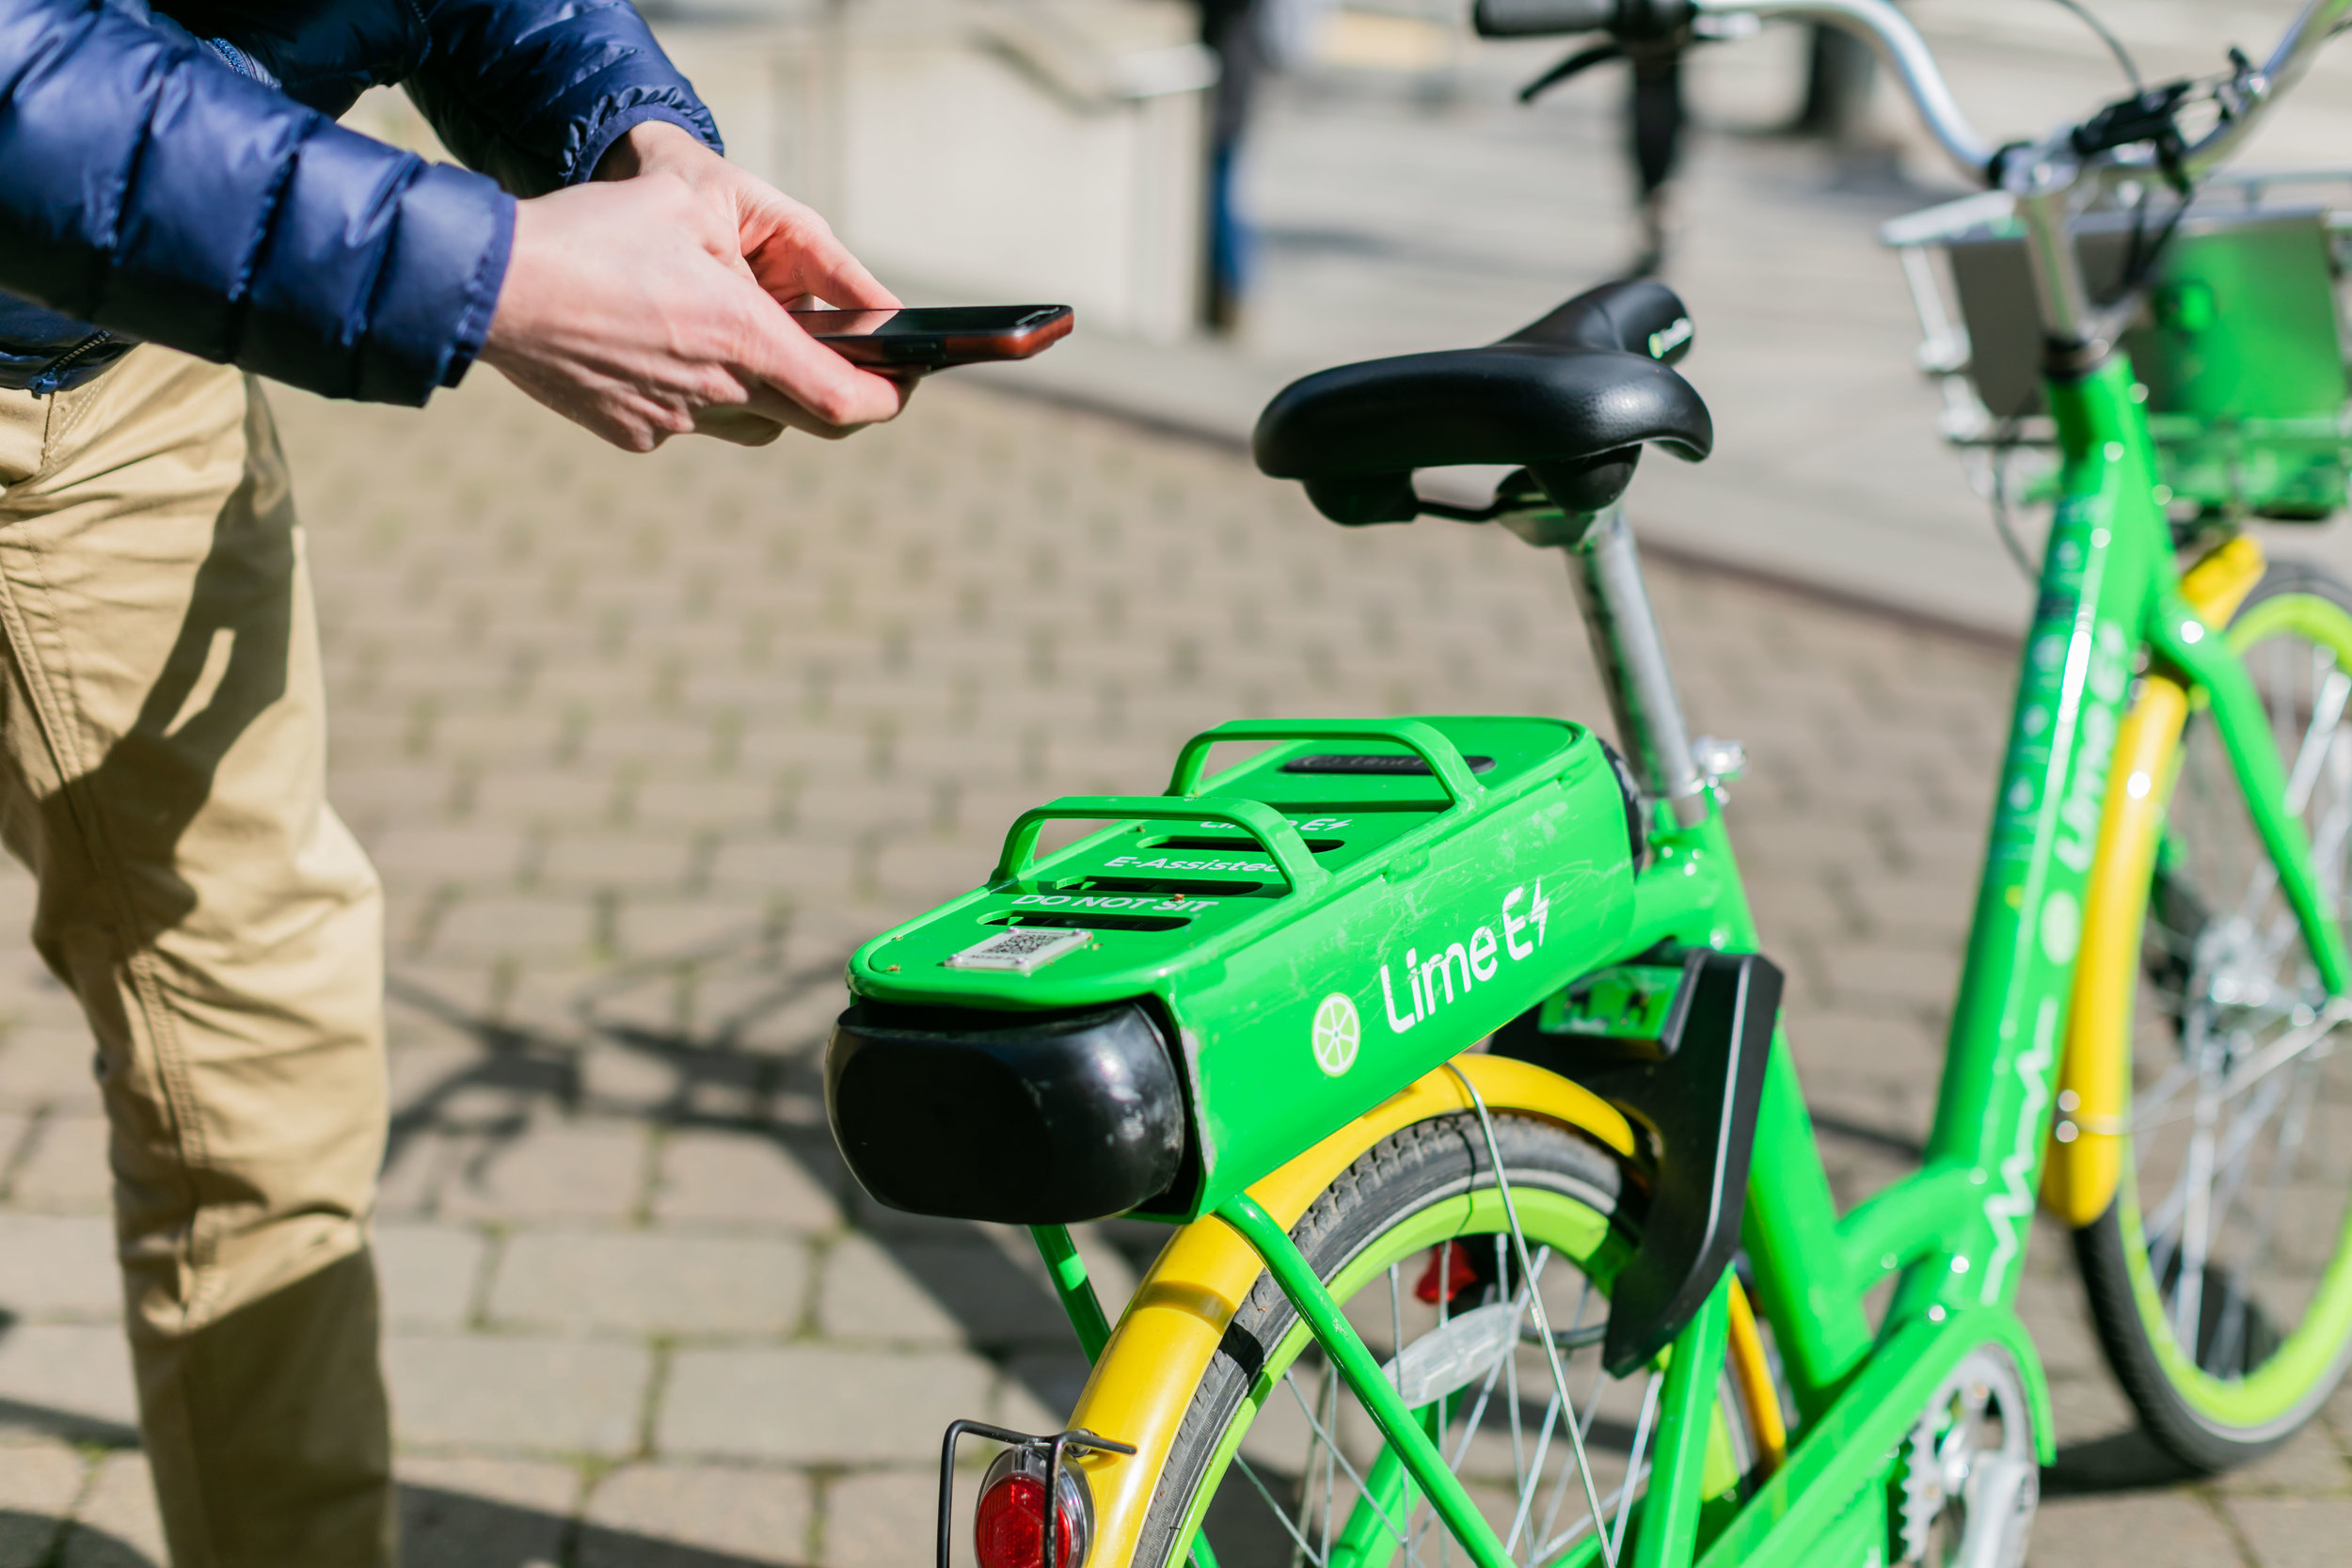 Easily unlock a bike using your smartphone.